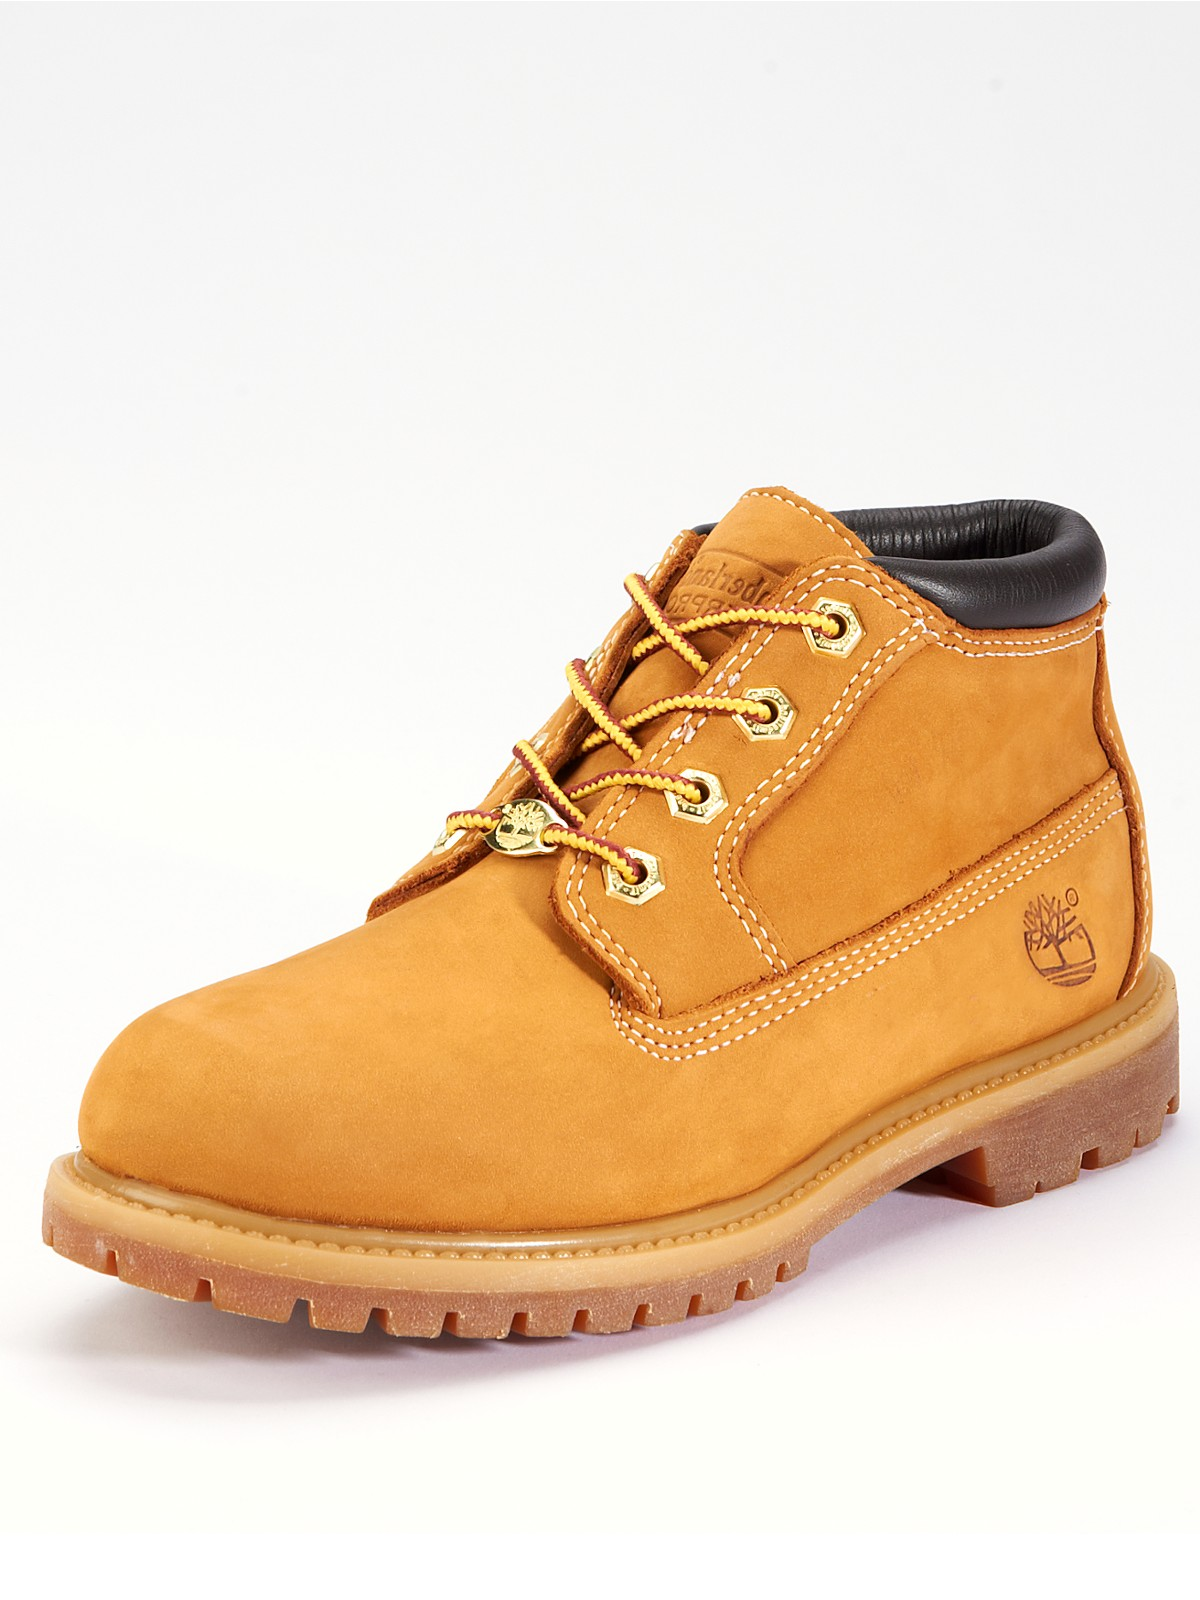 Lastest   View All Timberland Tan  View All Timberland Ankle Boot